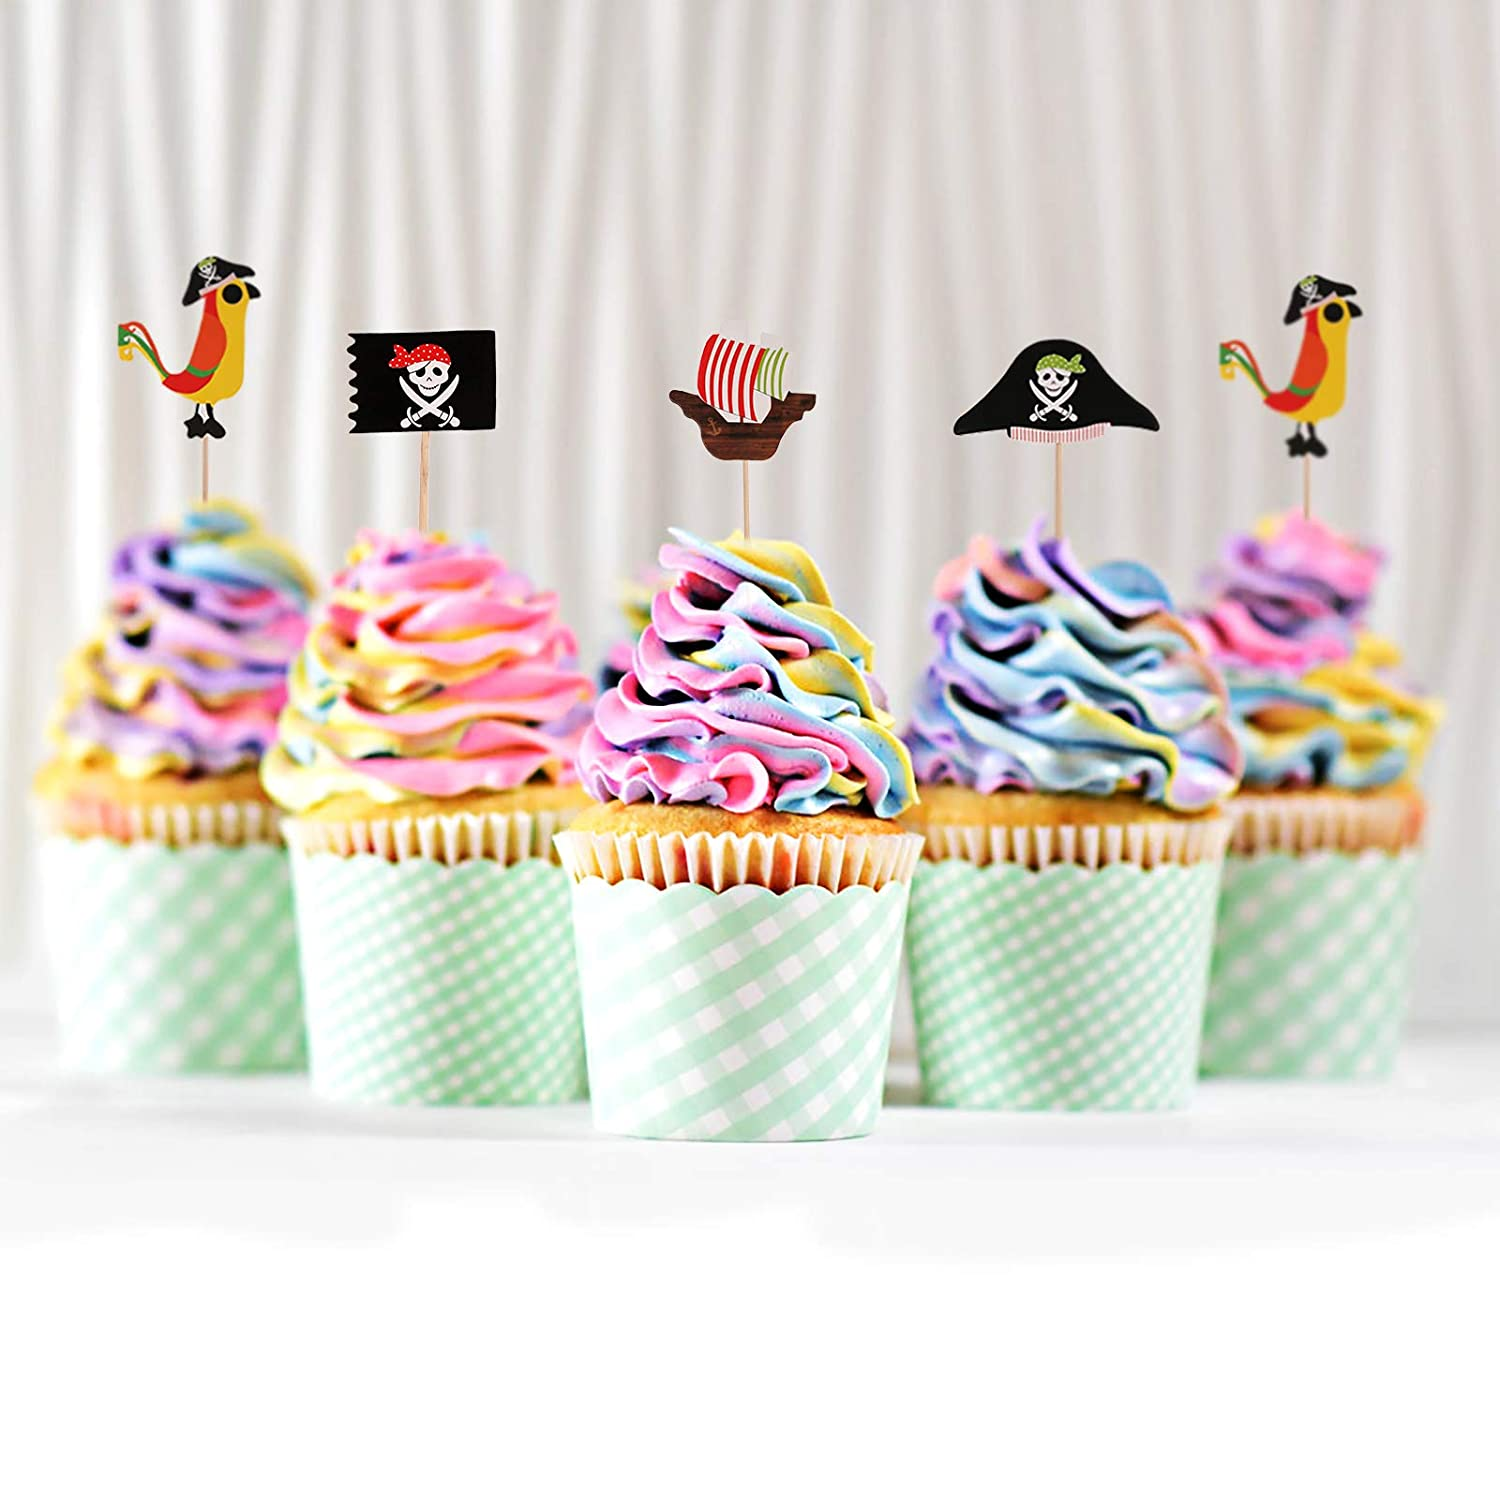 Morfong 40 Pieces Pirate Cake Topper Cupcake Picks Decorating Cake Decoration for Kids Birthday Party Halloween Parties Supplies Favors